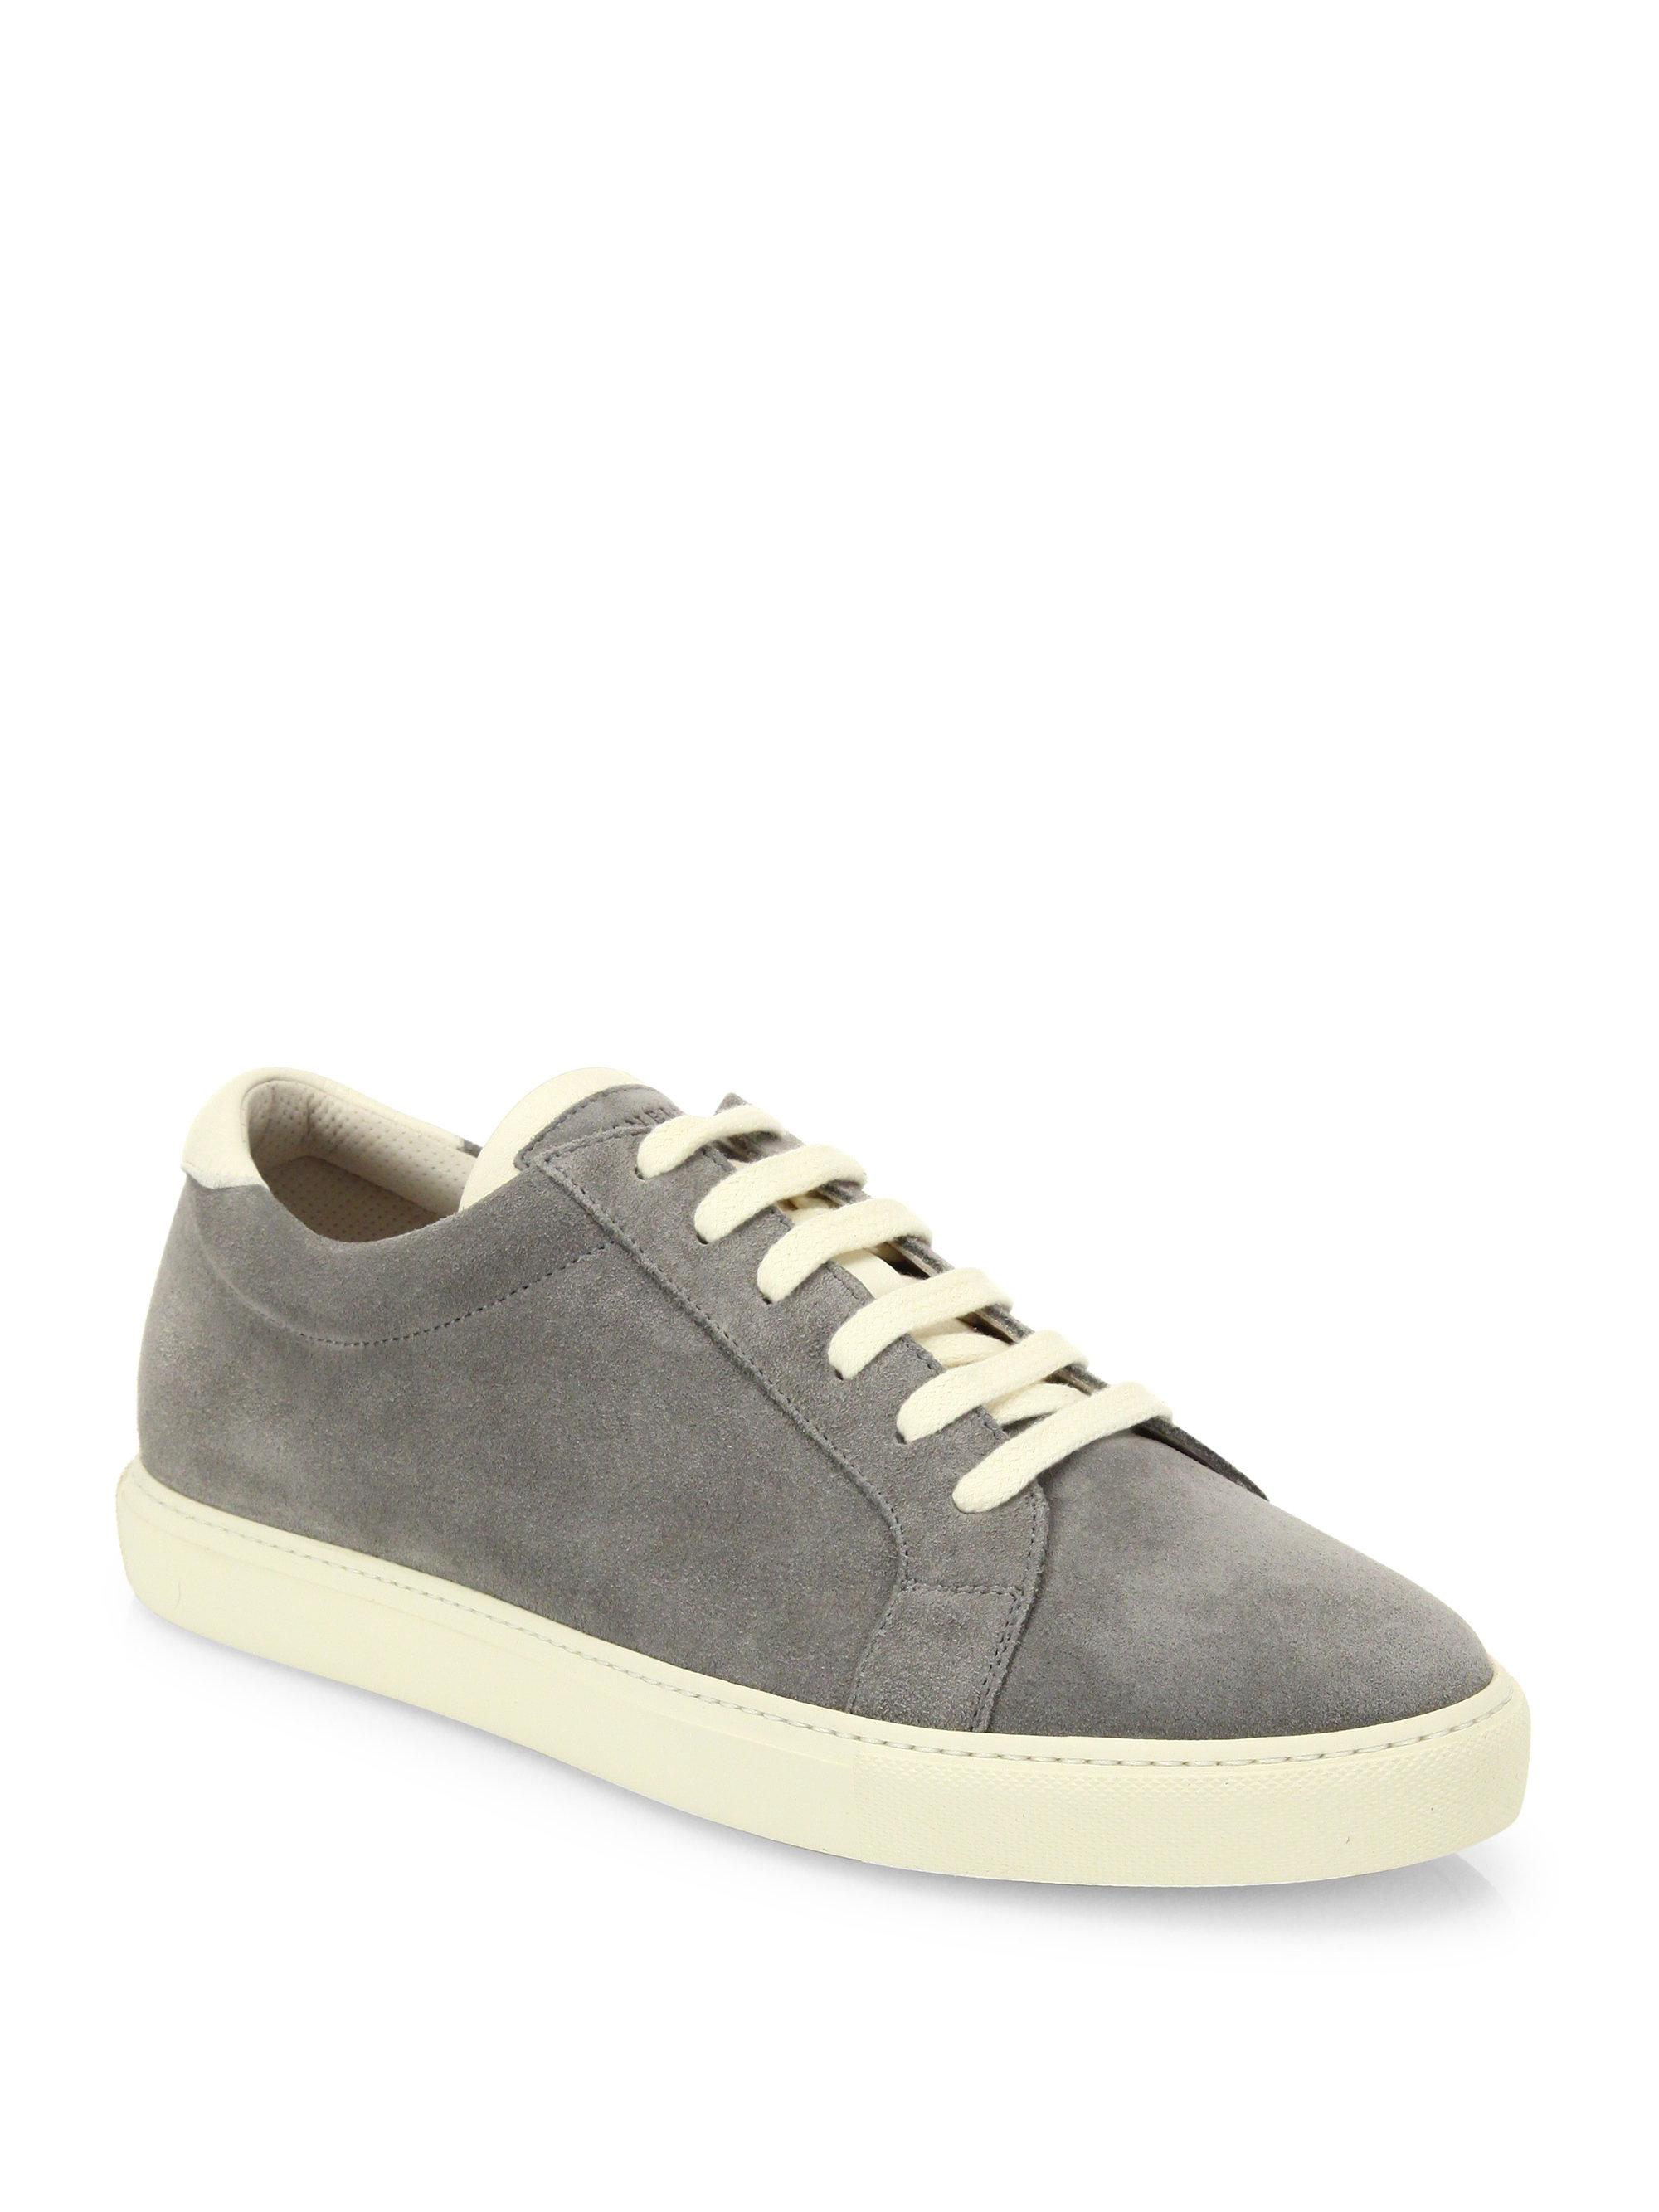 Velvet and suede sneakers Brunello Cucinelli bxH6LGr